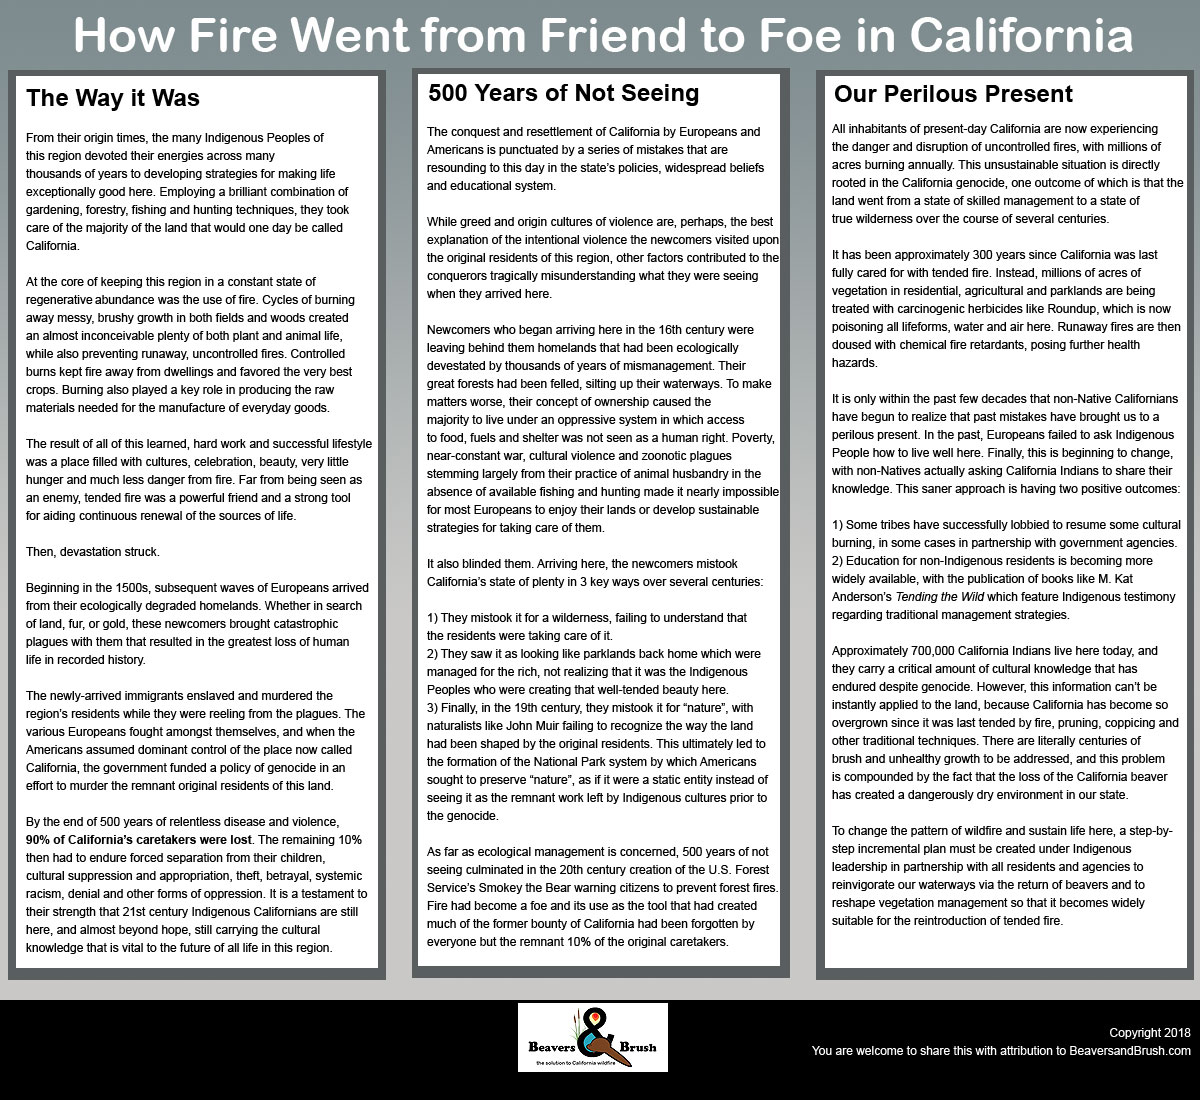 California fire solutions infographic